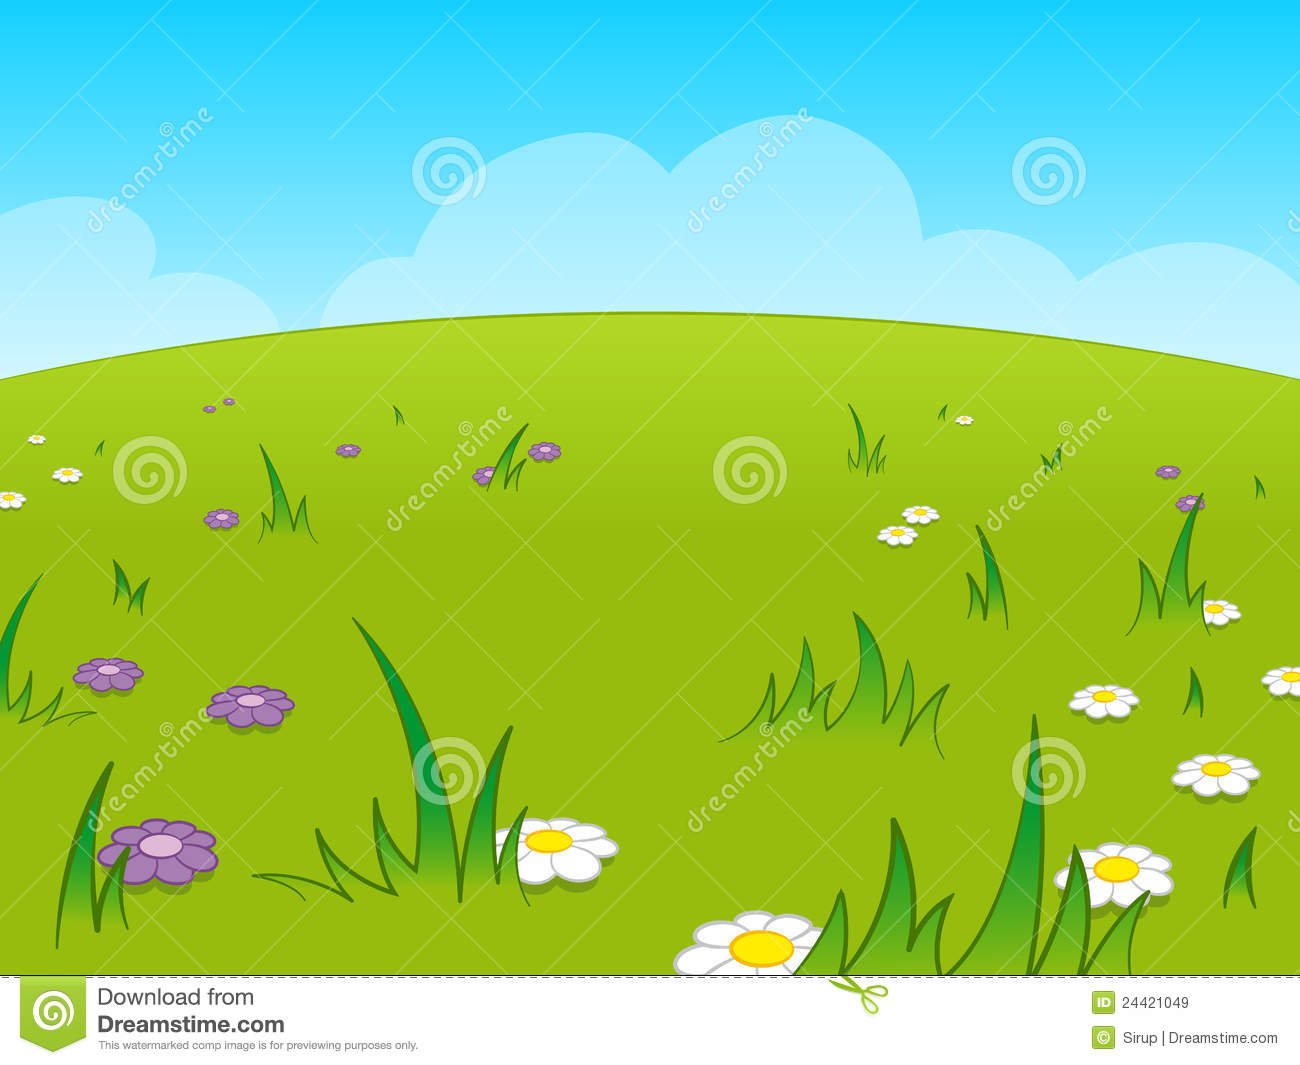 Royalty Free Stock Images: Beautiful green cartoon meadow against blue ...